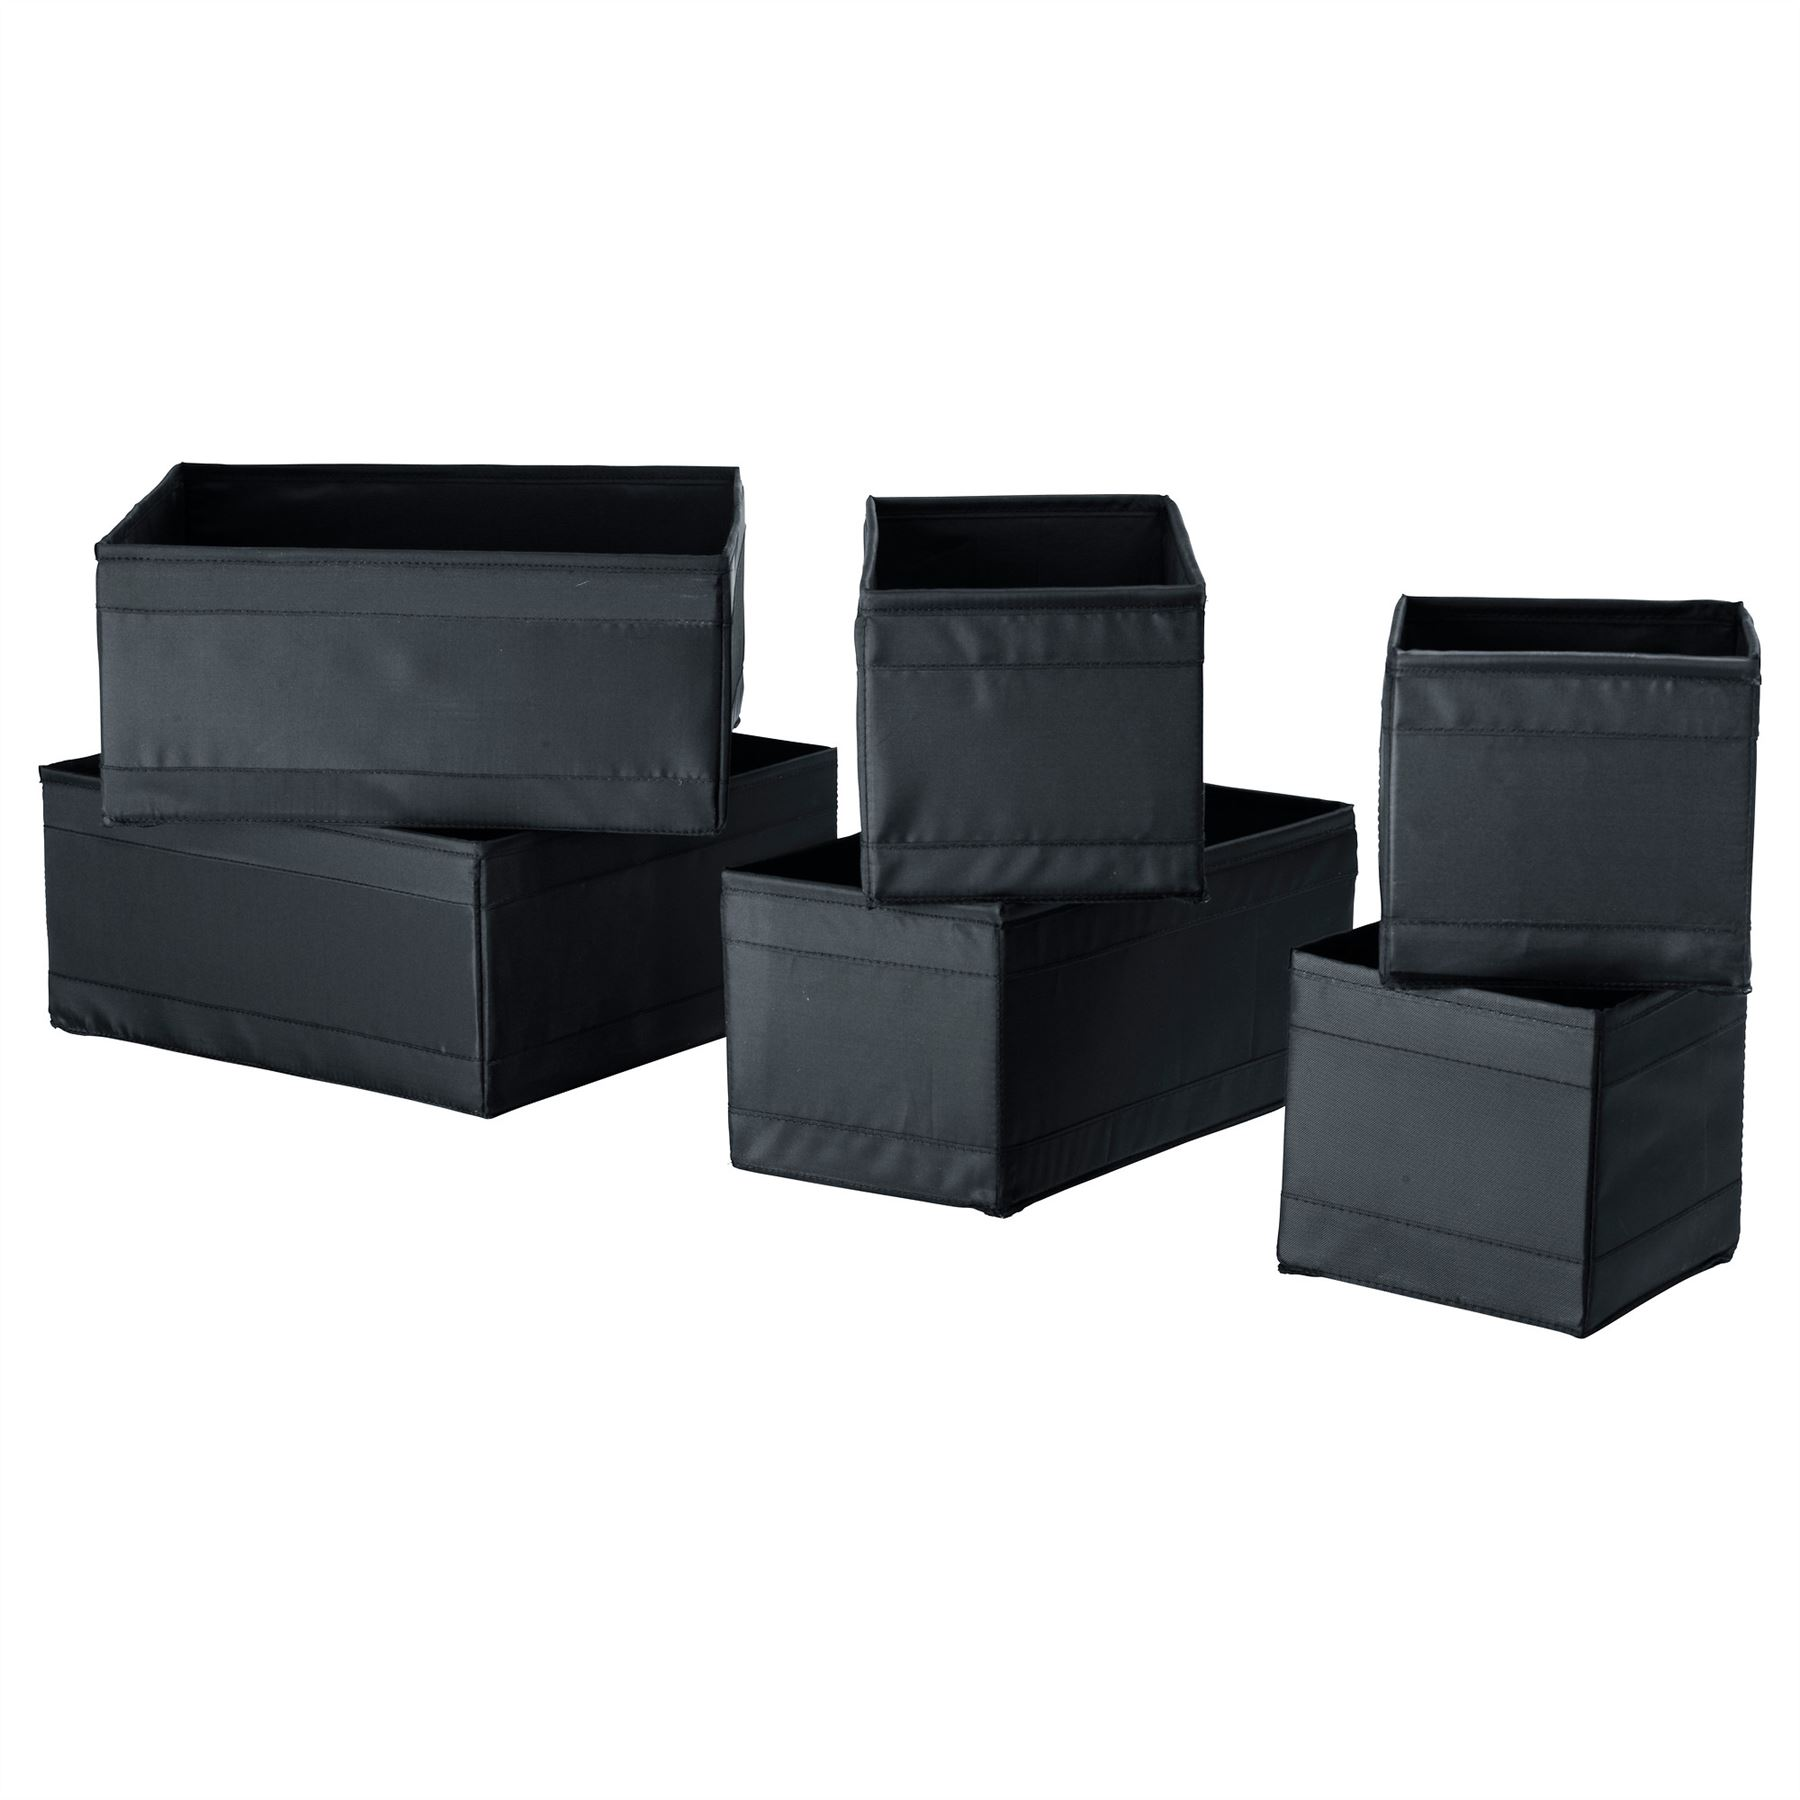 ikea skubb set of 6 storage box organizer wardrobe drawer. Black Bedroom Furniture Sets. Home Design Ideas